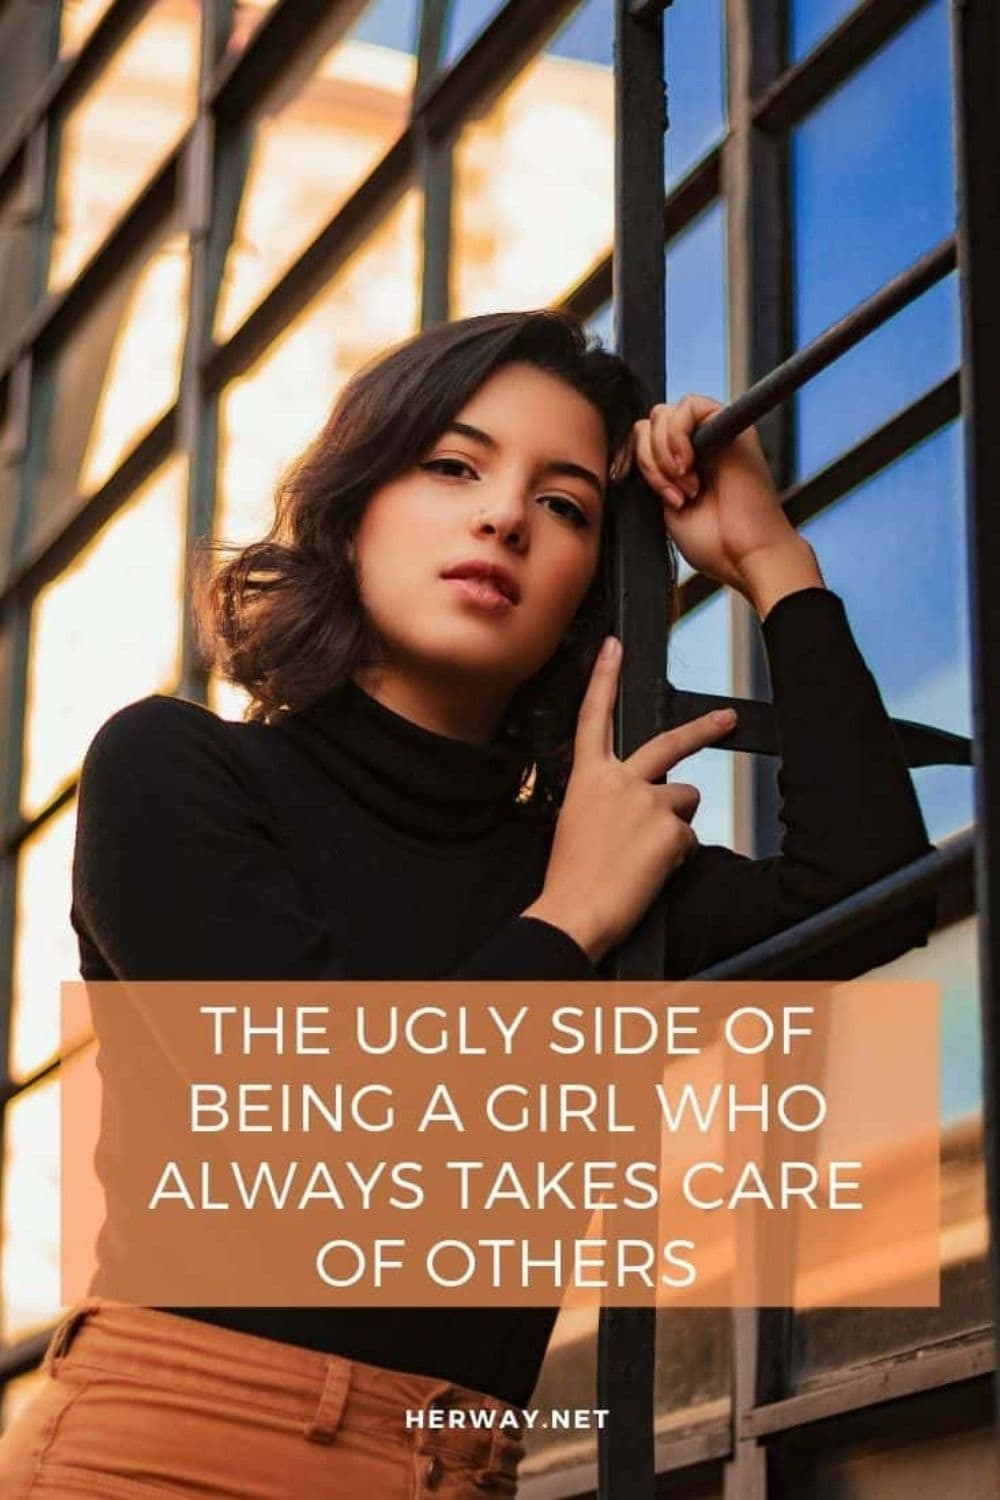 The Ugly Side Of Being A Girl Who Always Takes Care Of Others